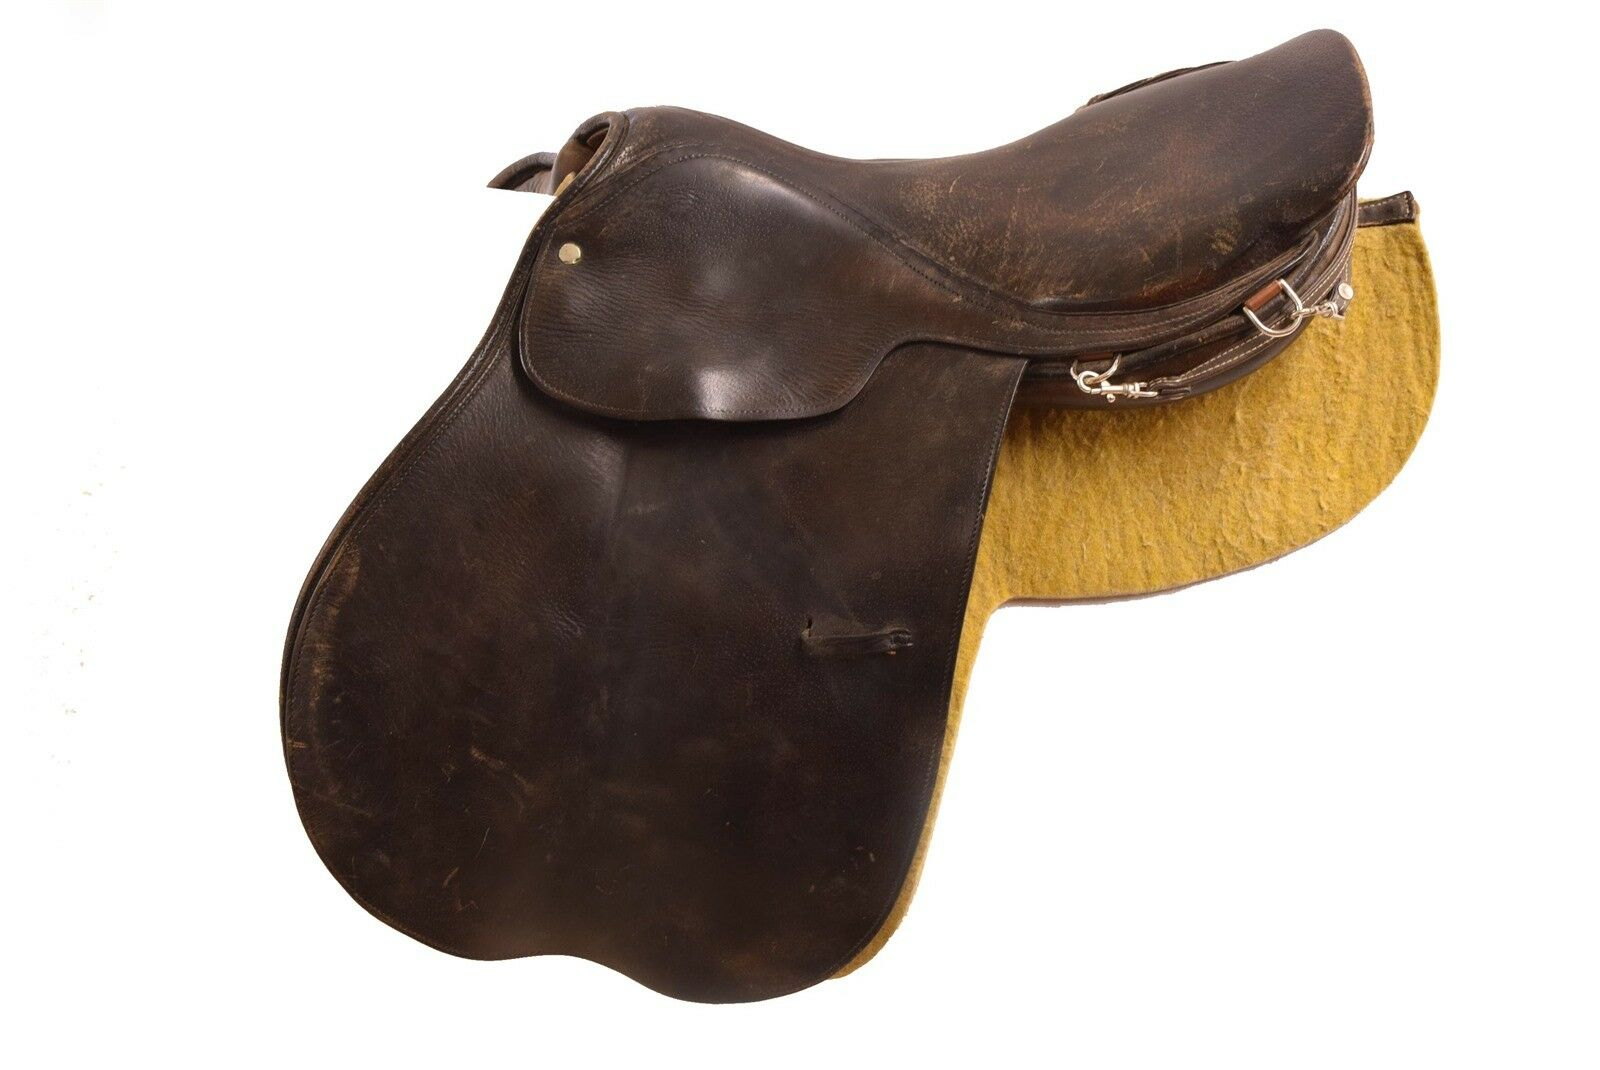 Triumph Sherman Butler Bredhers LTD 16.5  English Leather Saddle Made in England